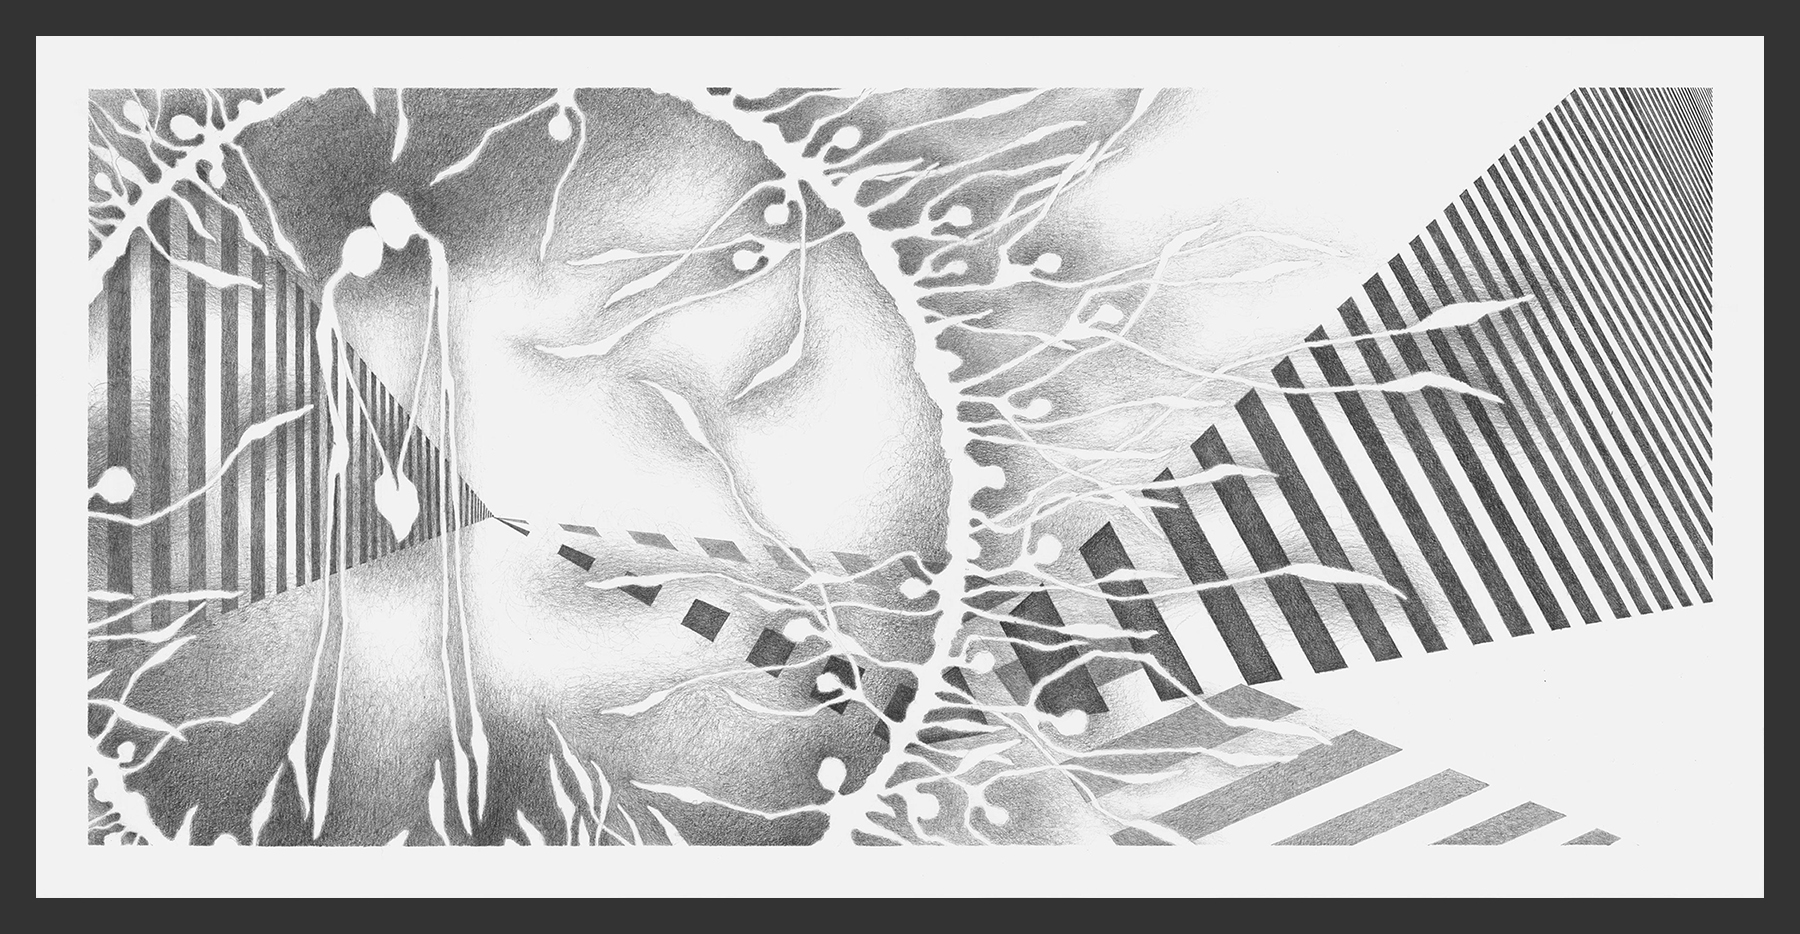 12-Website-Meditation-XII-Graphite-12x24-Astrid-Muller-Karger